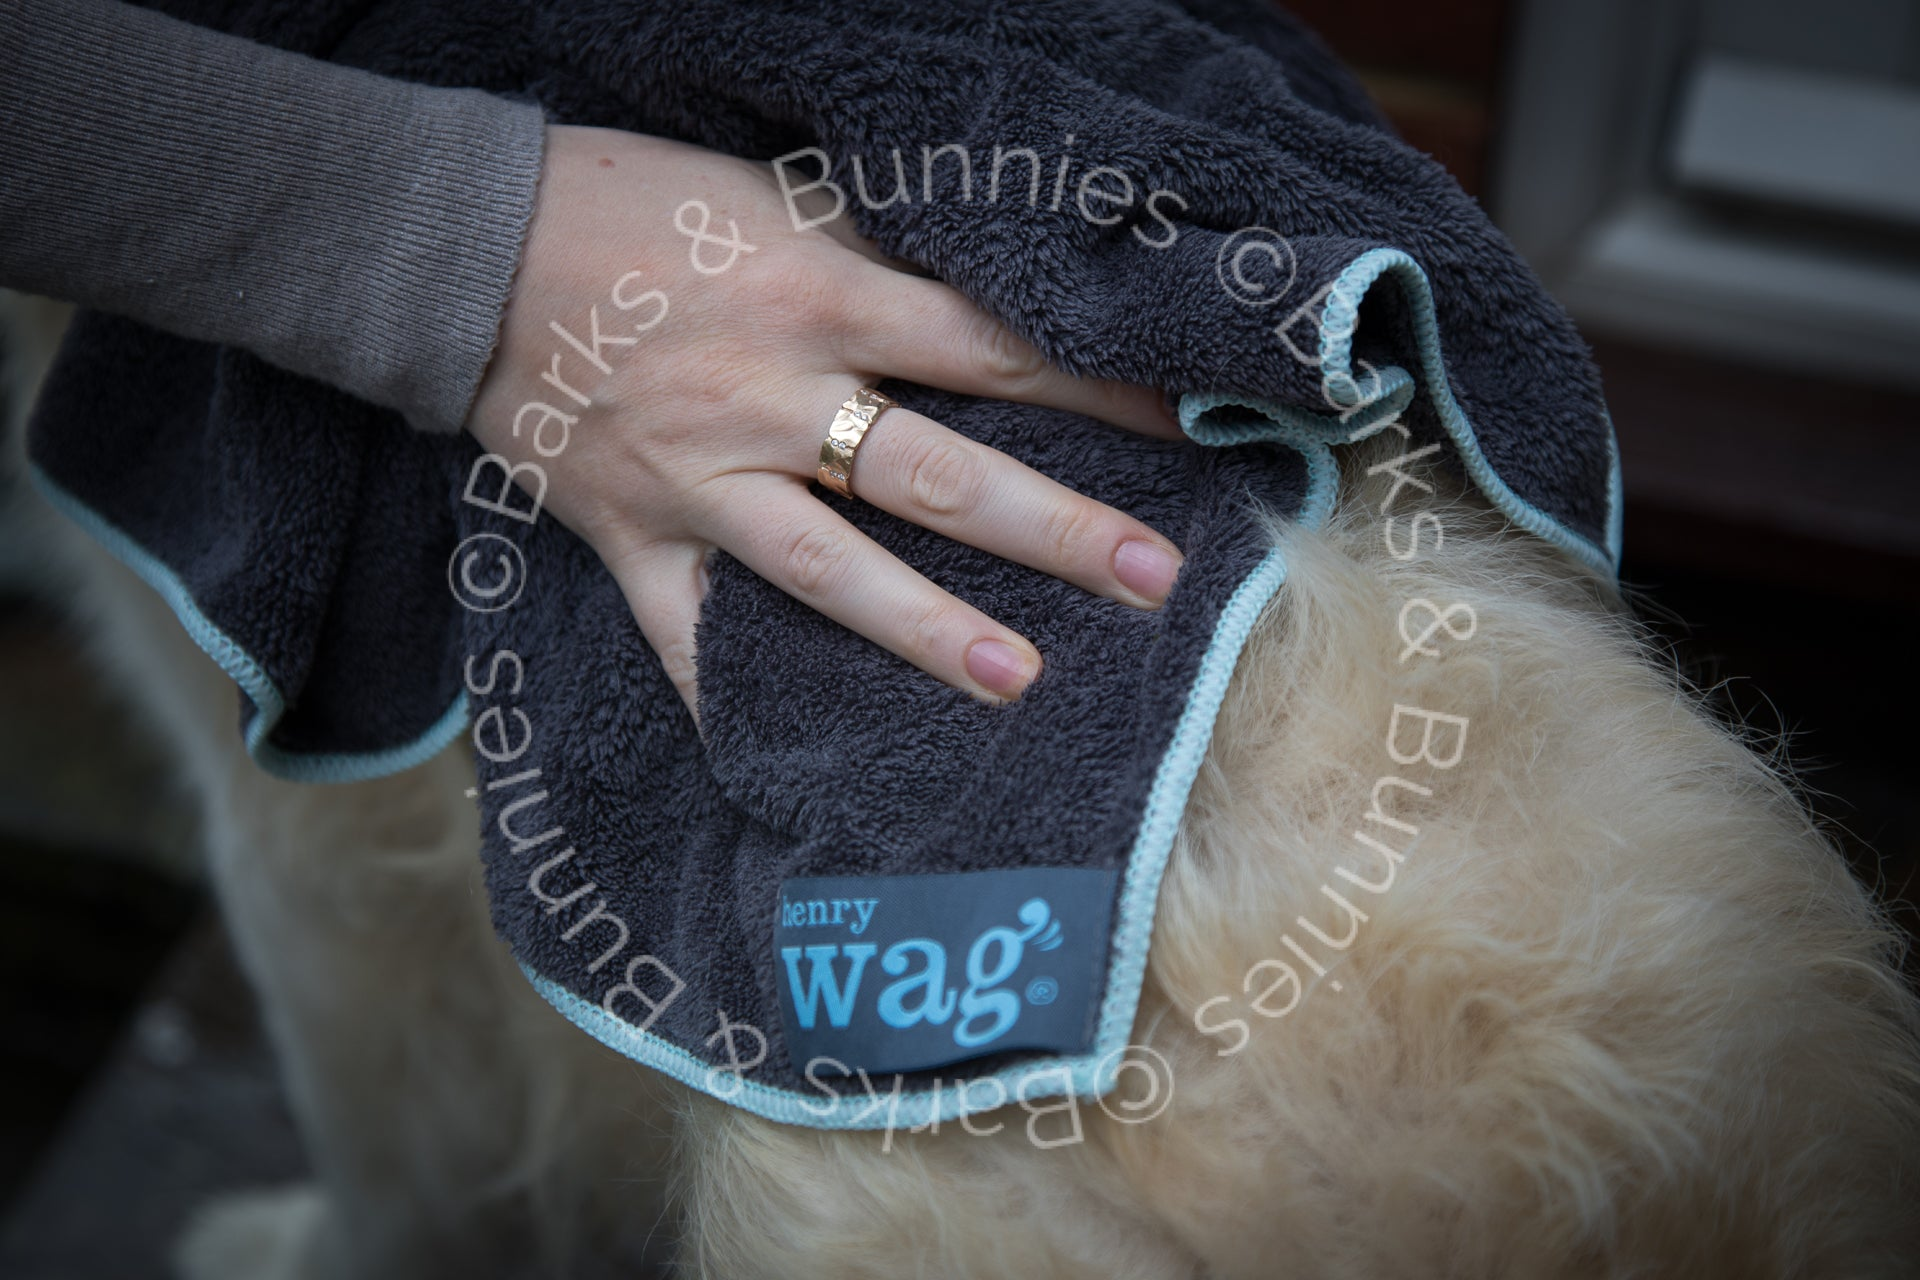 Henry Wag Microfibre Towel Review